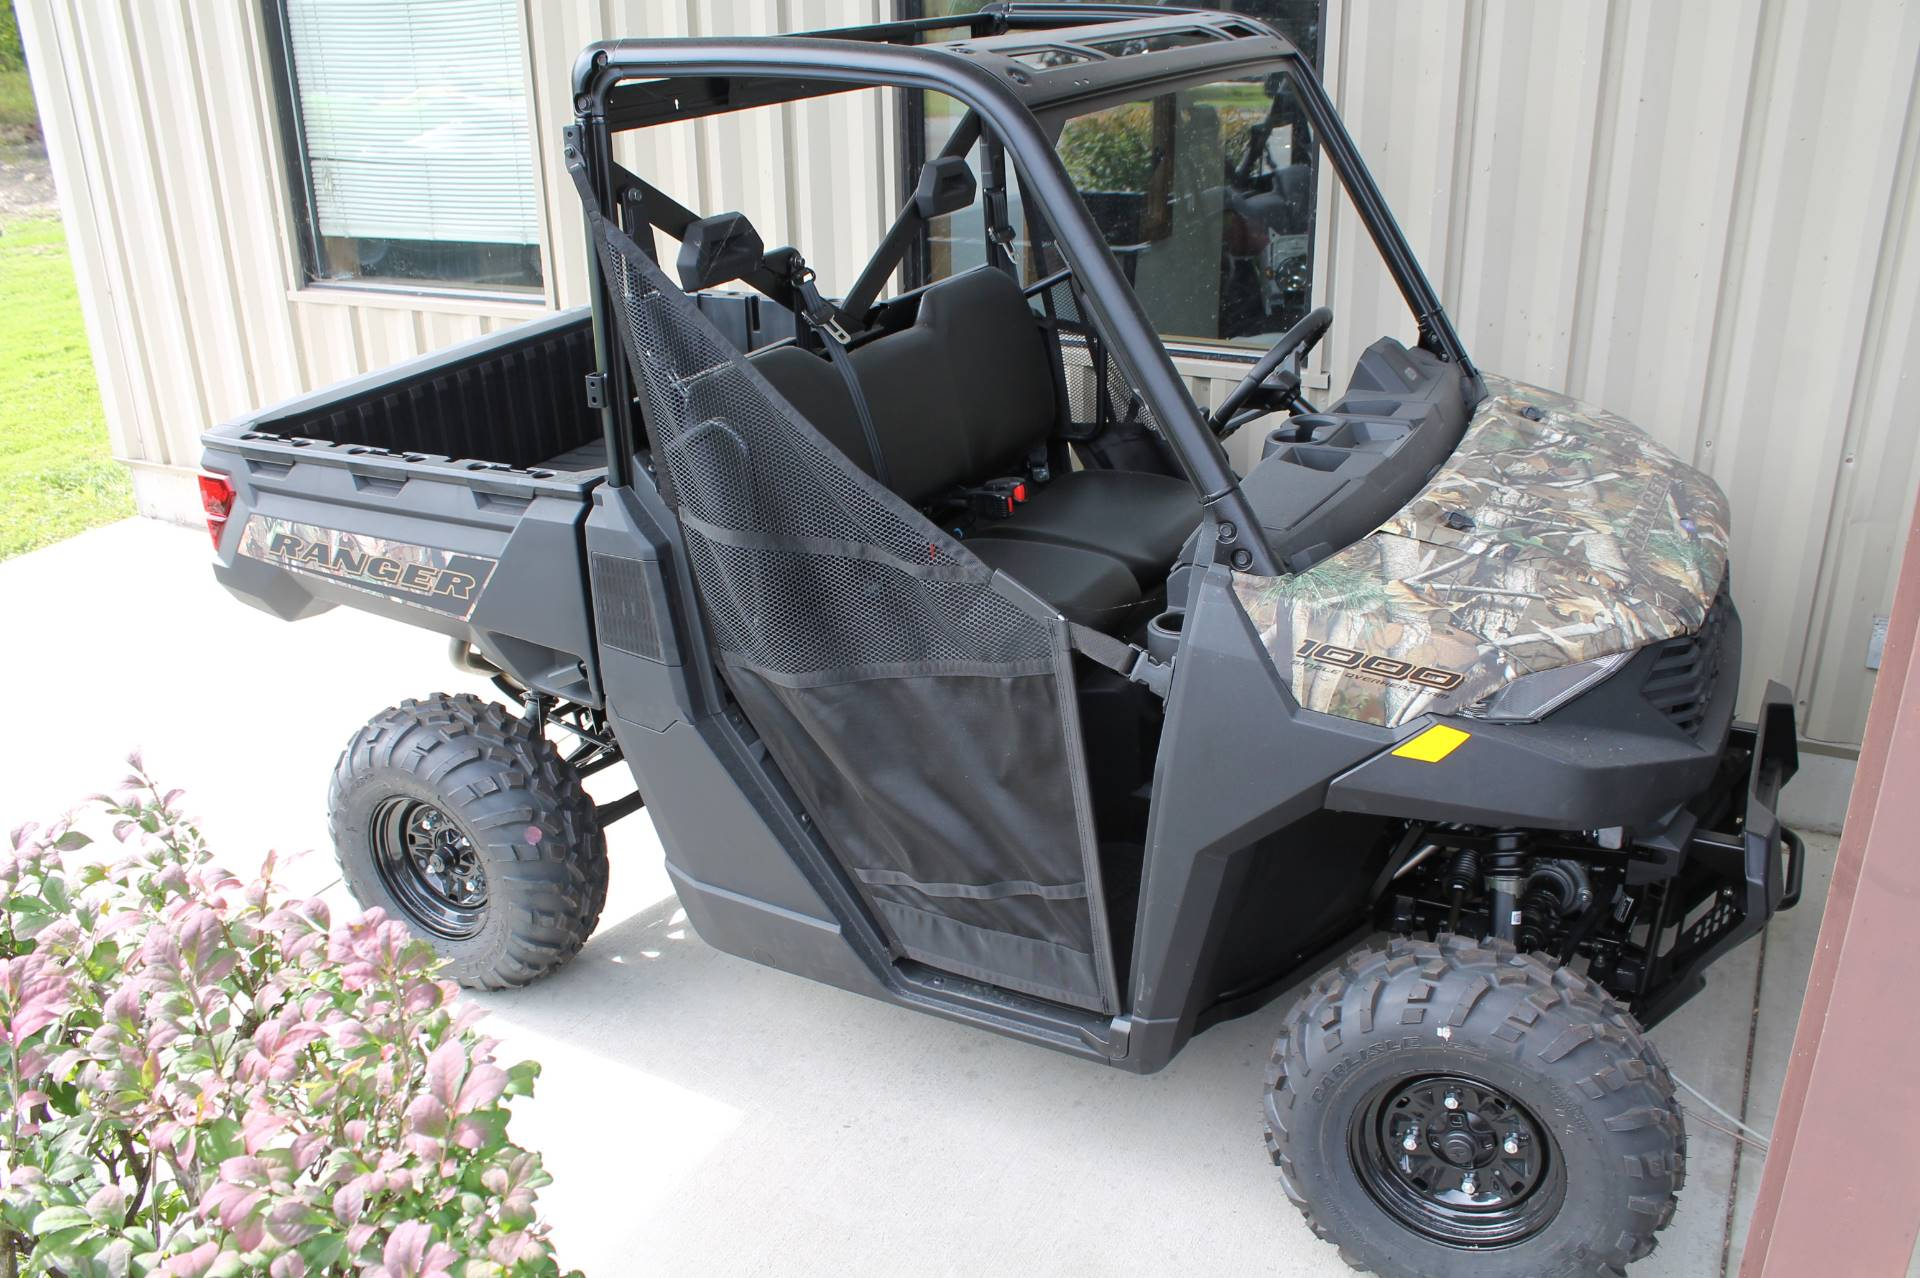 2020 Polaris Ranger 1000 EPS in Adams, Massachusetts - Photo 1